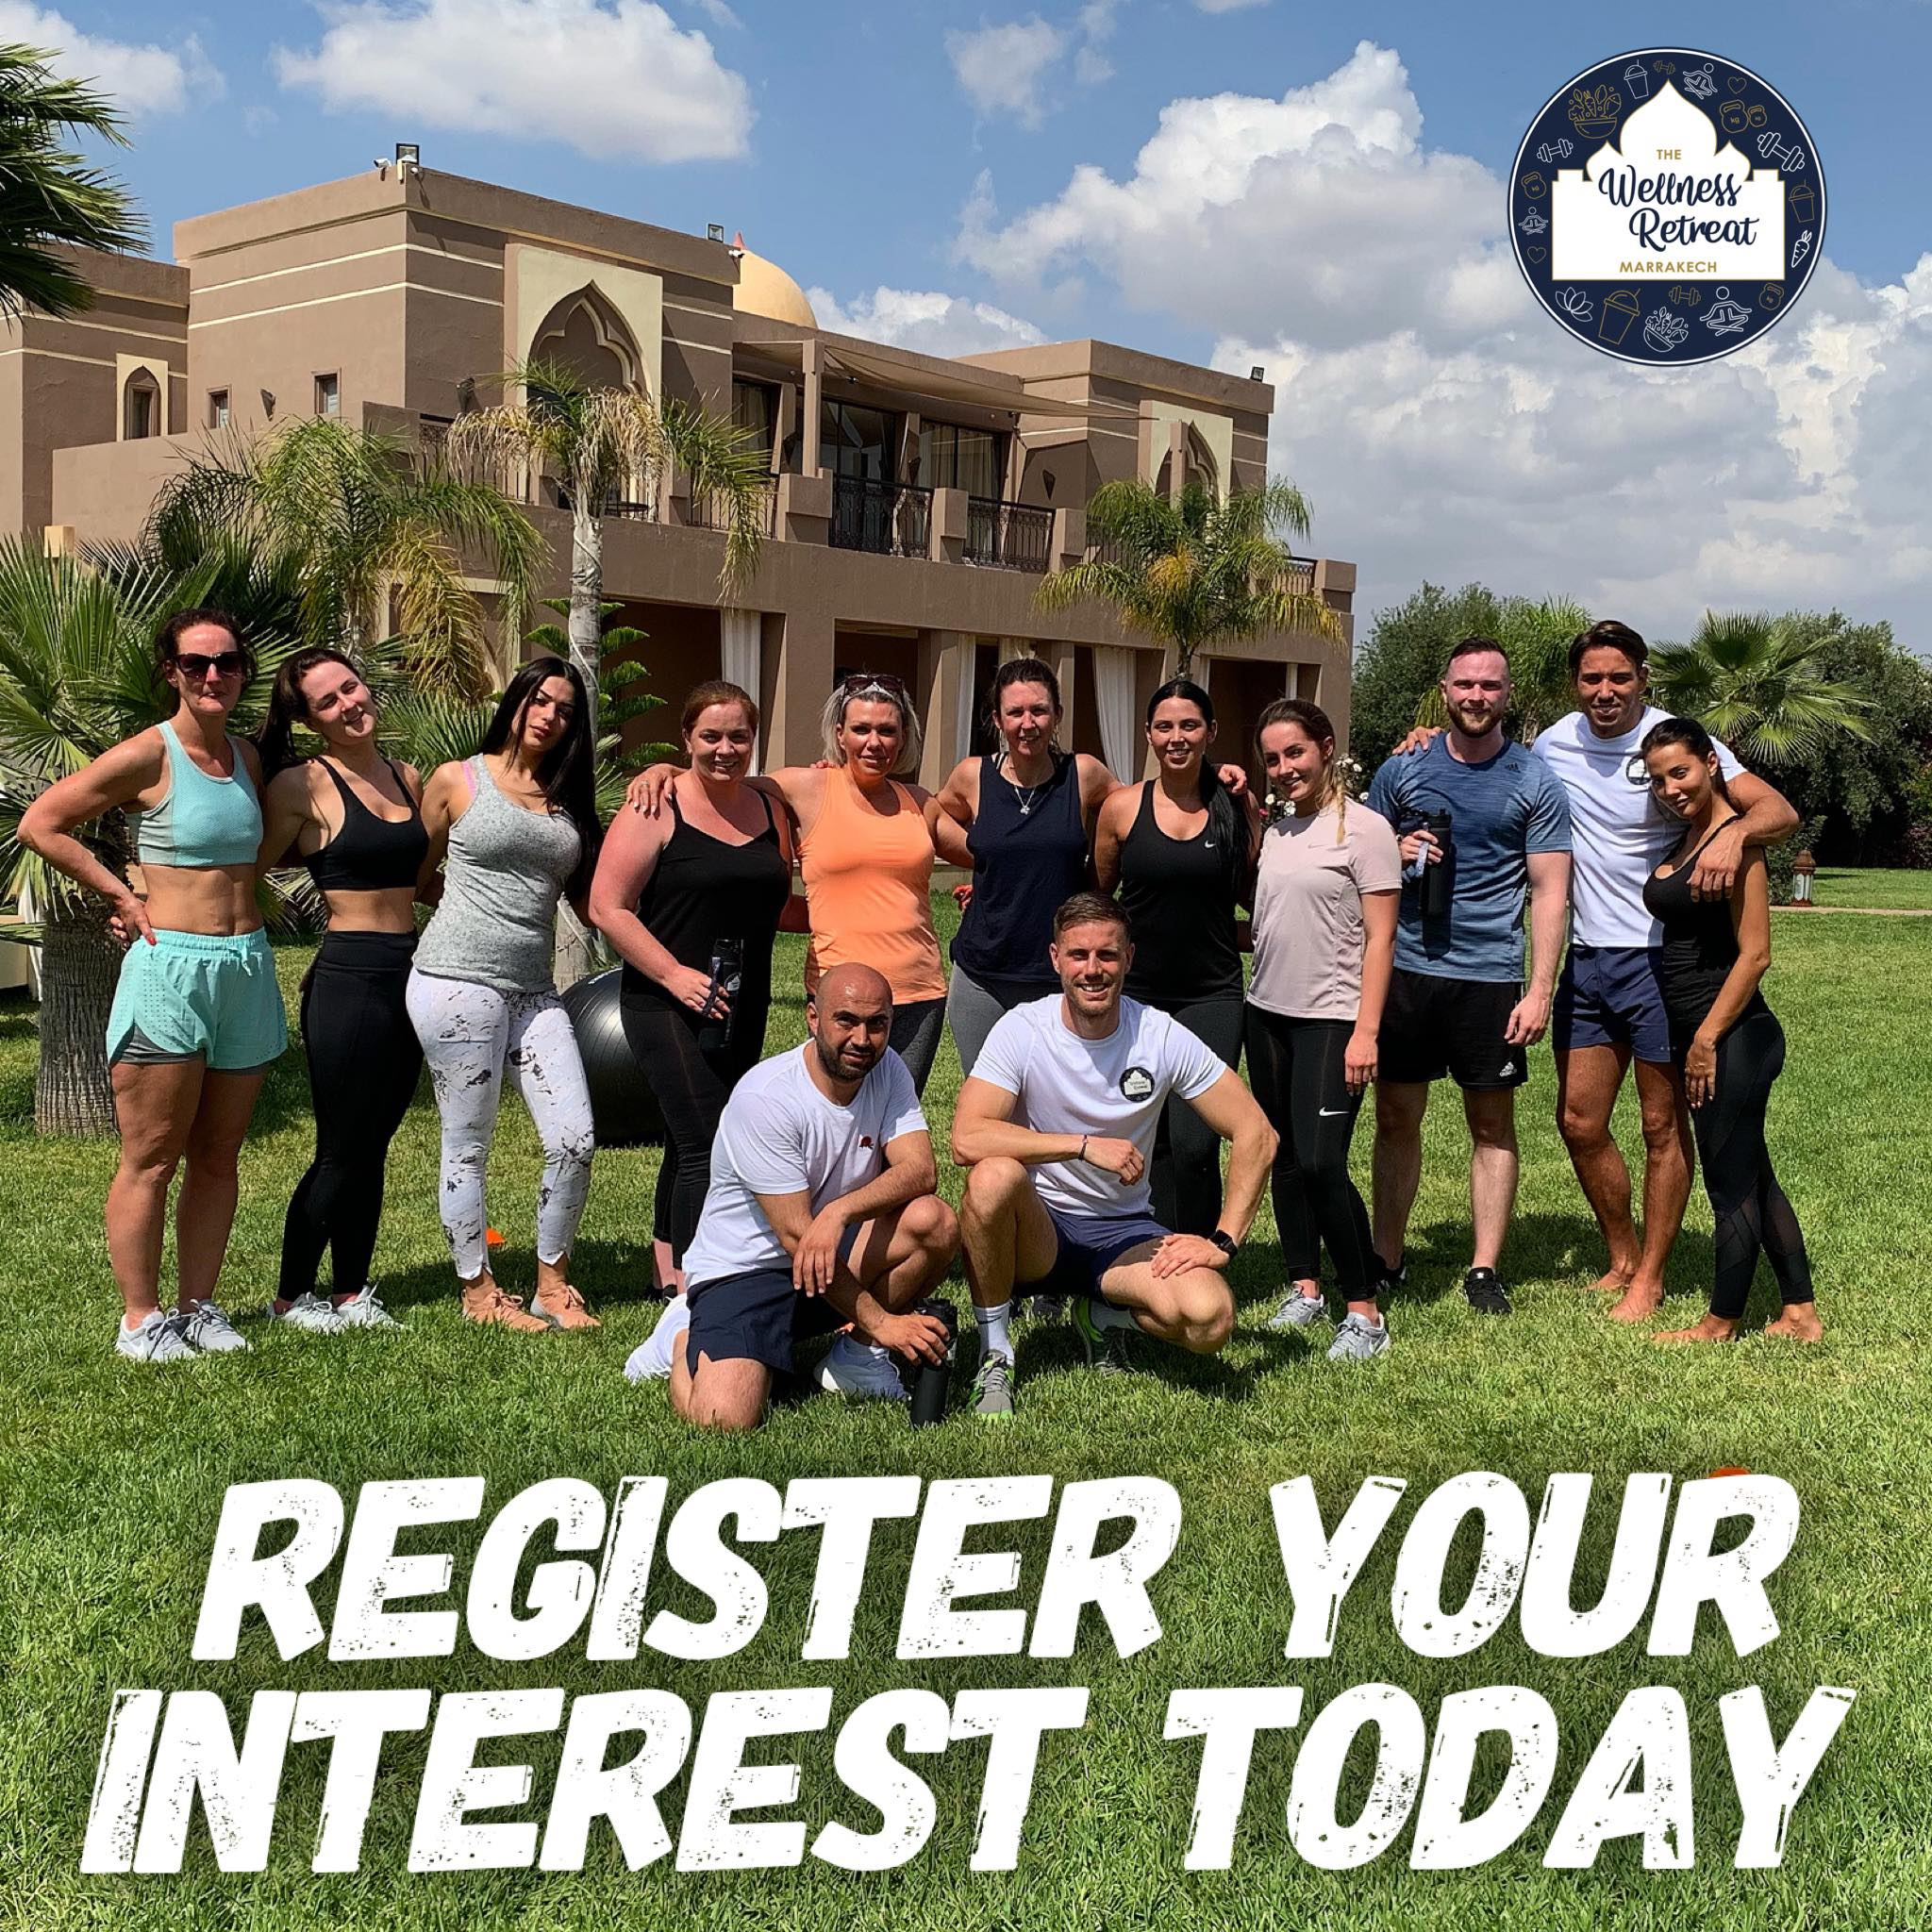 REGISTER YOUR INTEREST PIC.jpg